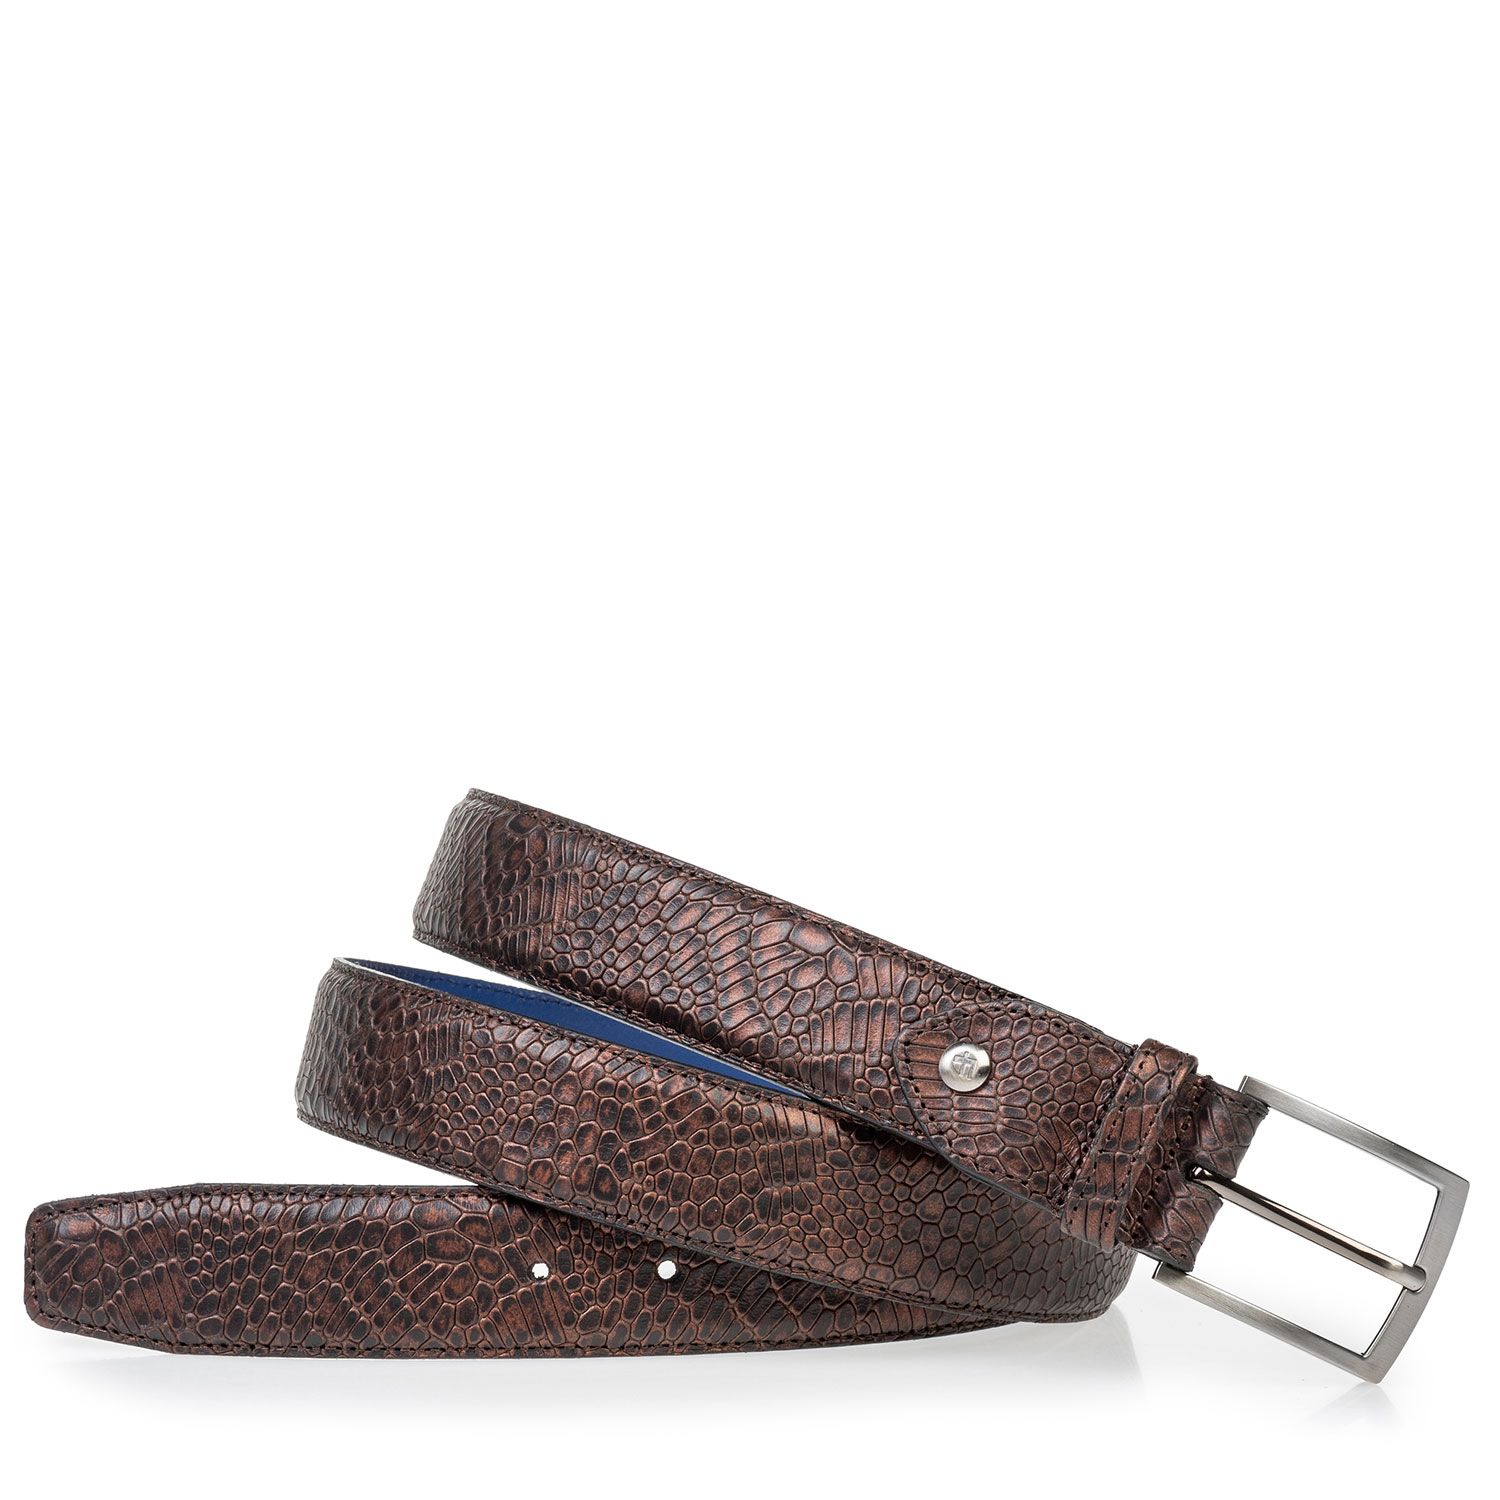 75203/43 - Leather belt metallic red